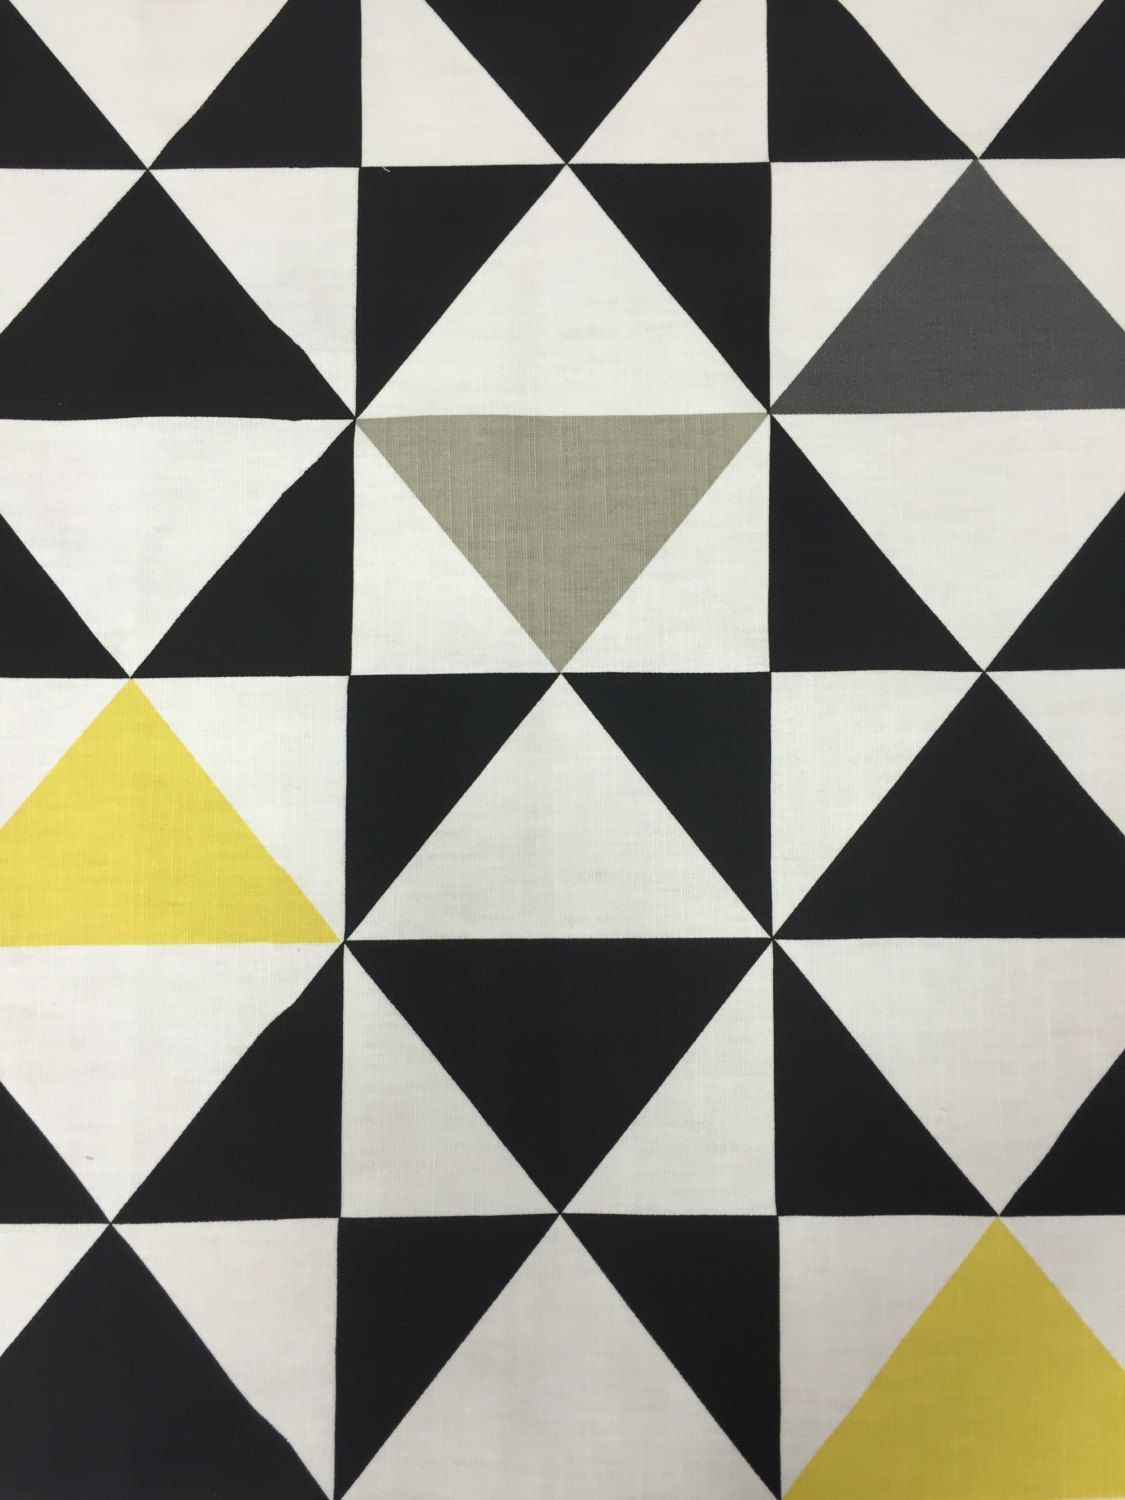 Table Clothes Triangle Shape Fabric With Black Yellow Gray And White Triangles Geometric Cotton By Sanfabric